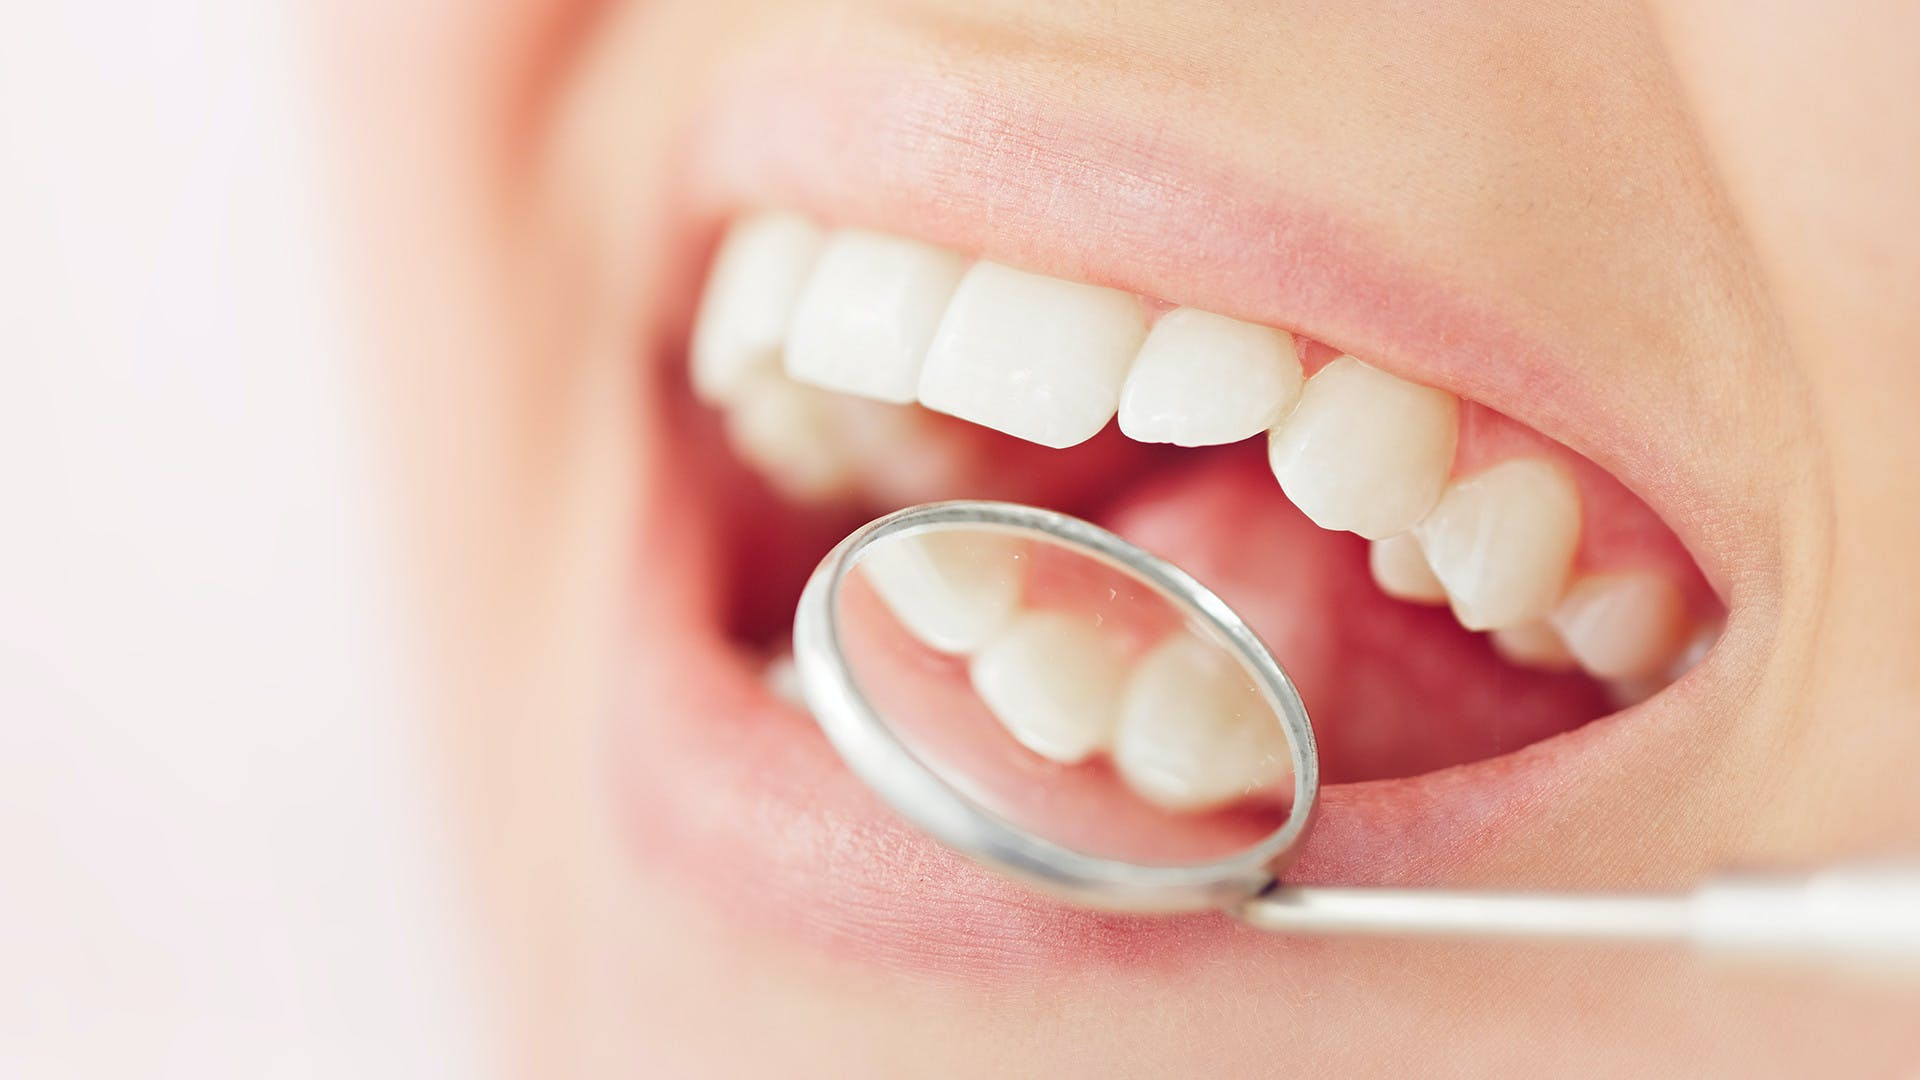 smiling open mouth with dental mirror checking for oral thrush